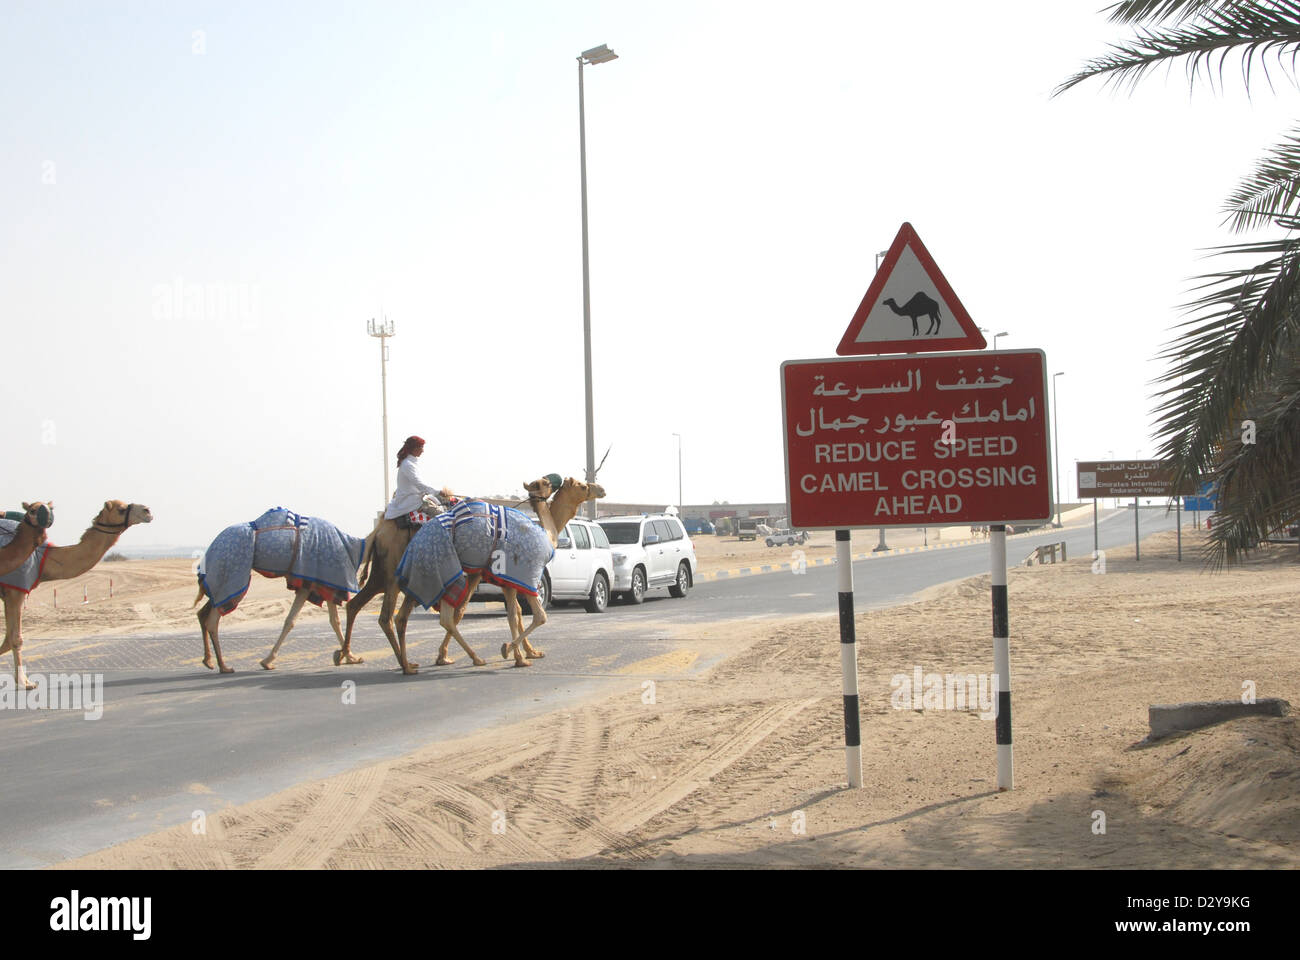 A camel crossing point on a road at the International Endurance Village near Abu Dhabi Stock Photo